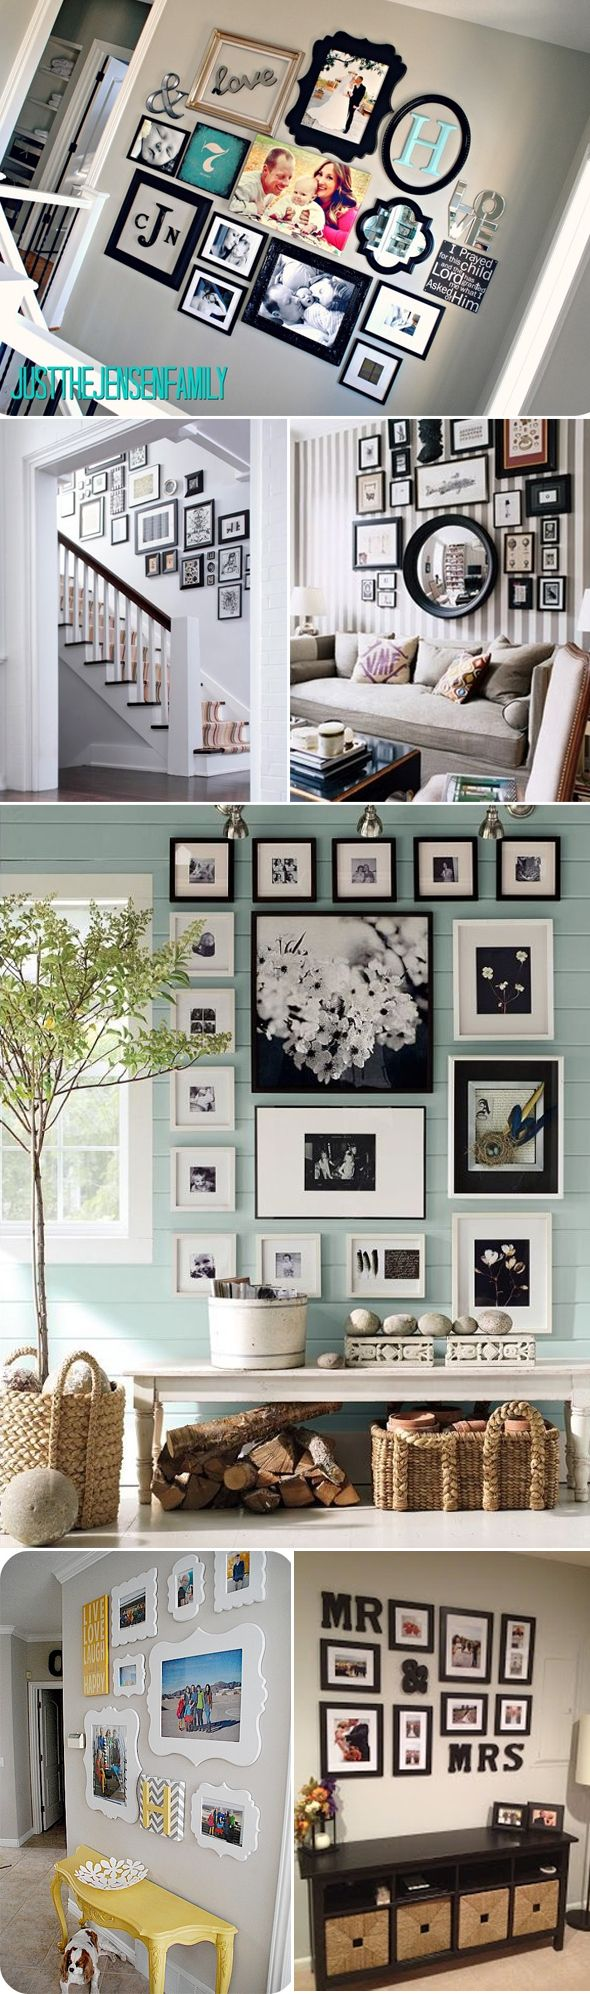 Gallery Wall Design best 25+ photo collage walls ideas on pinterest | photo collage